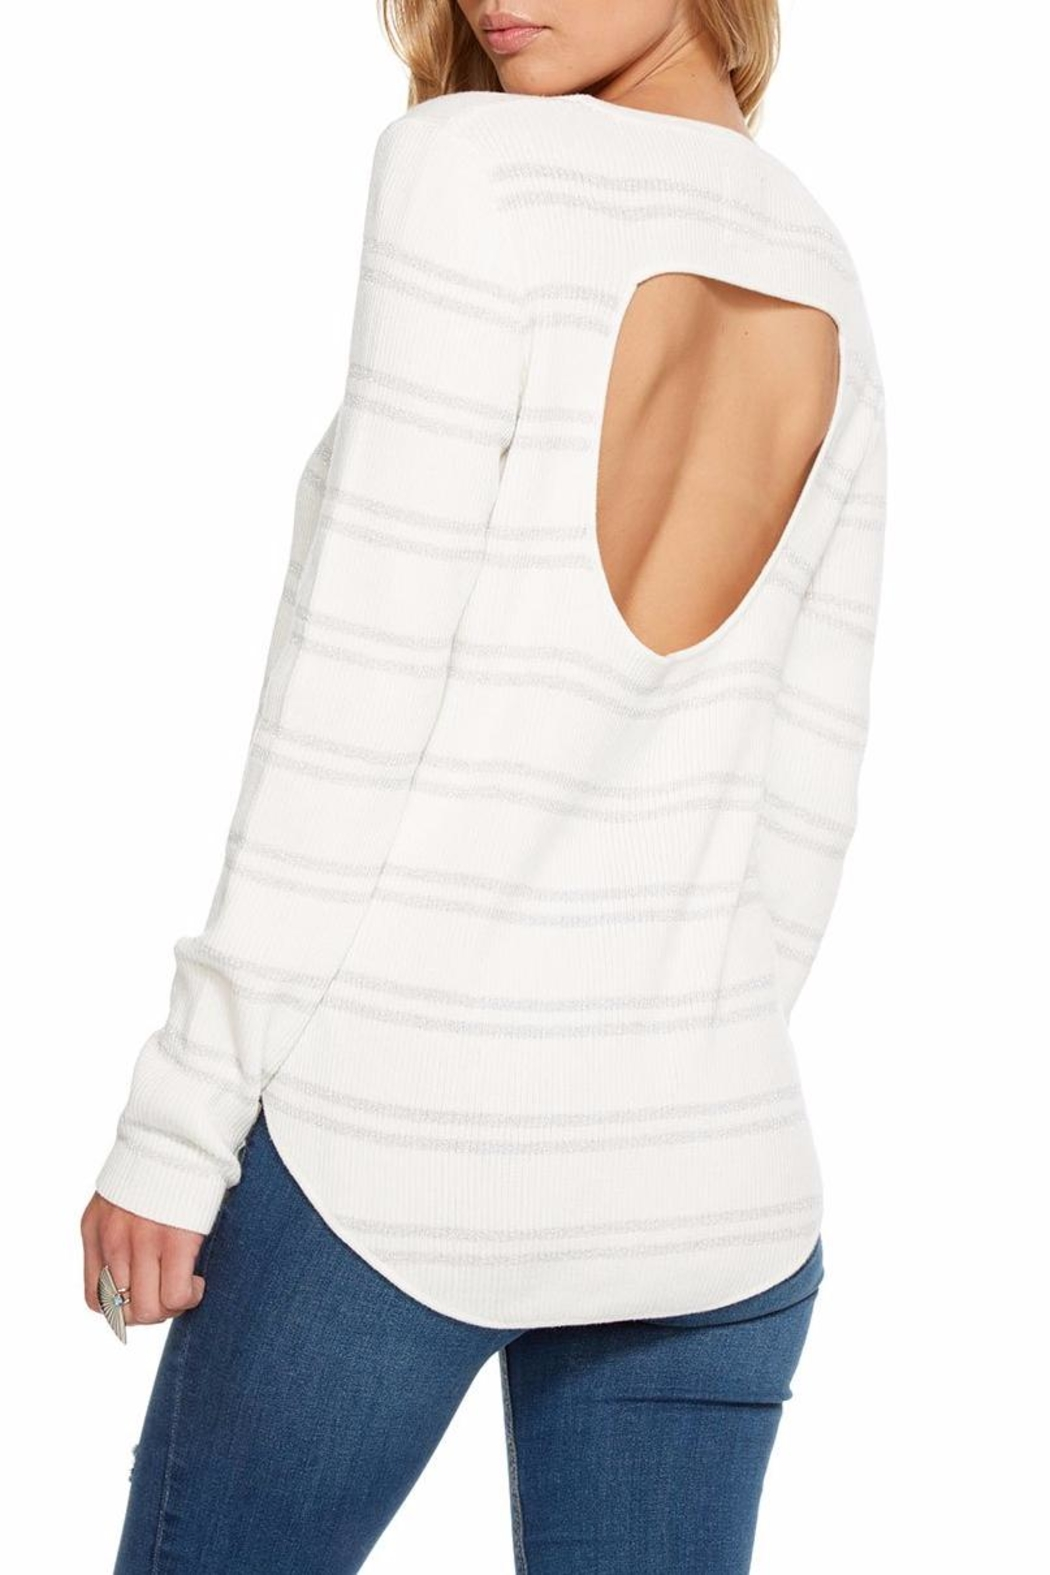 Chaser Rib Double-Vent Sweater - Front Full Image